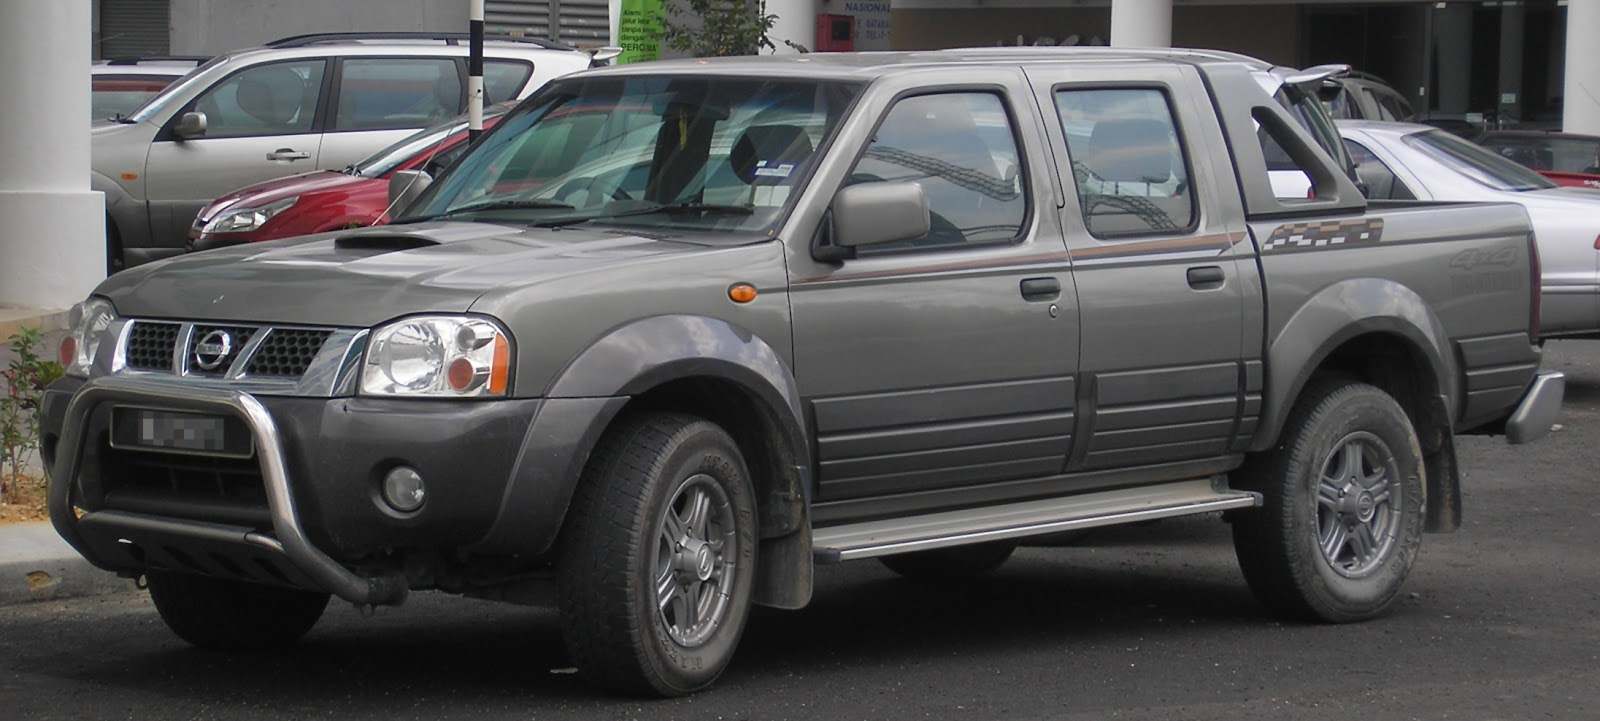 Photo of used pickup truck